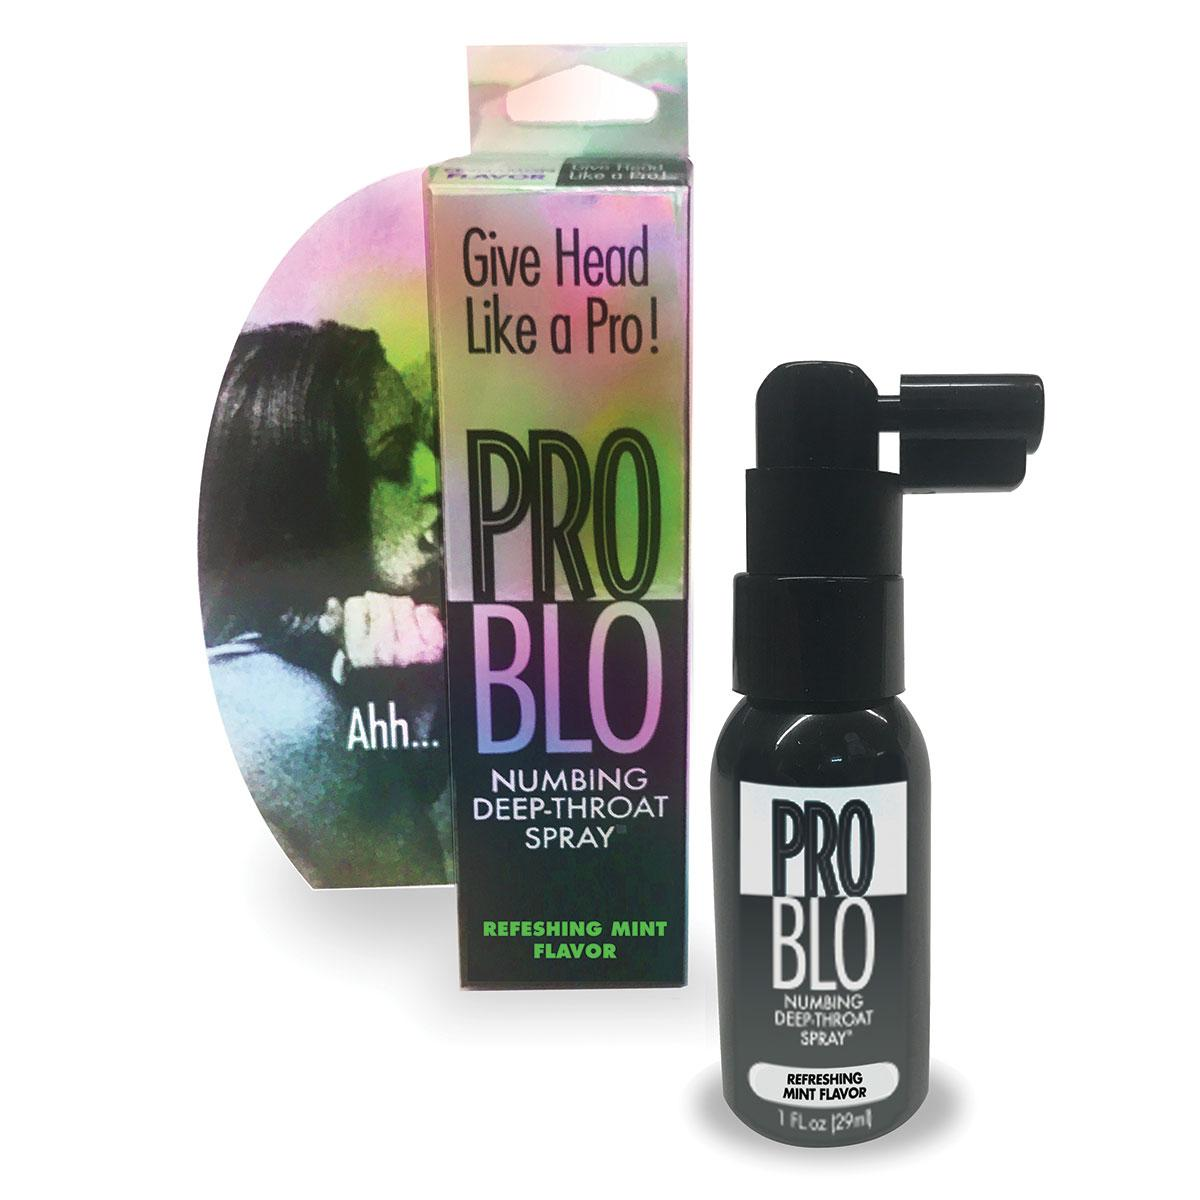 Problo Numbing Spray 1.25oz - Mint